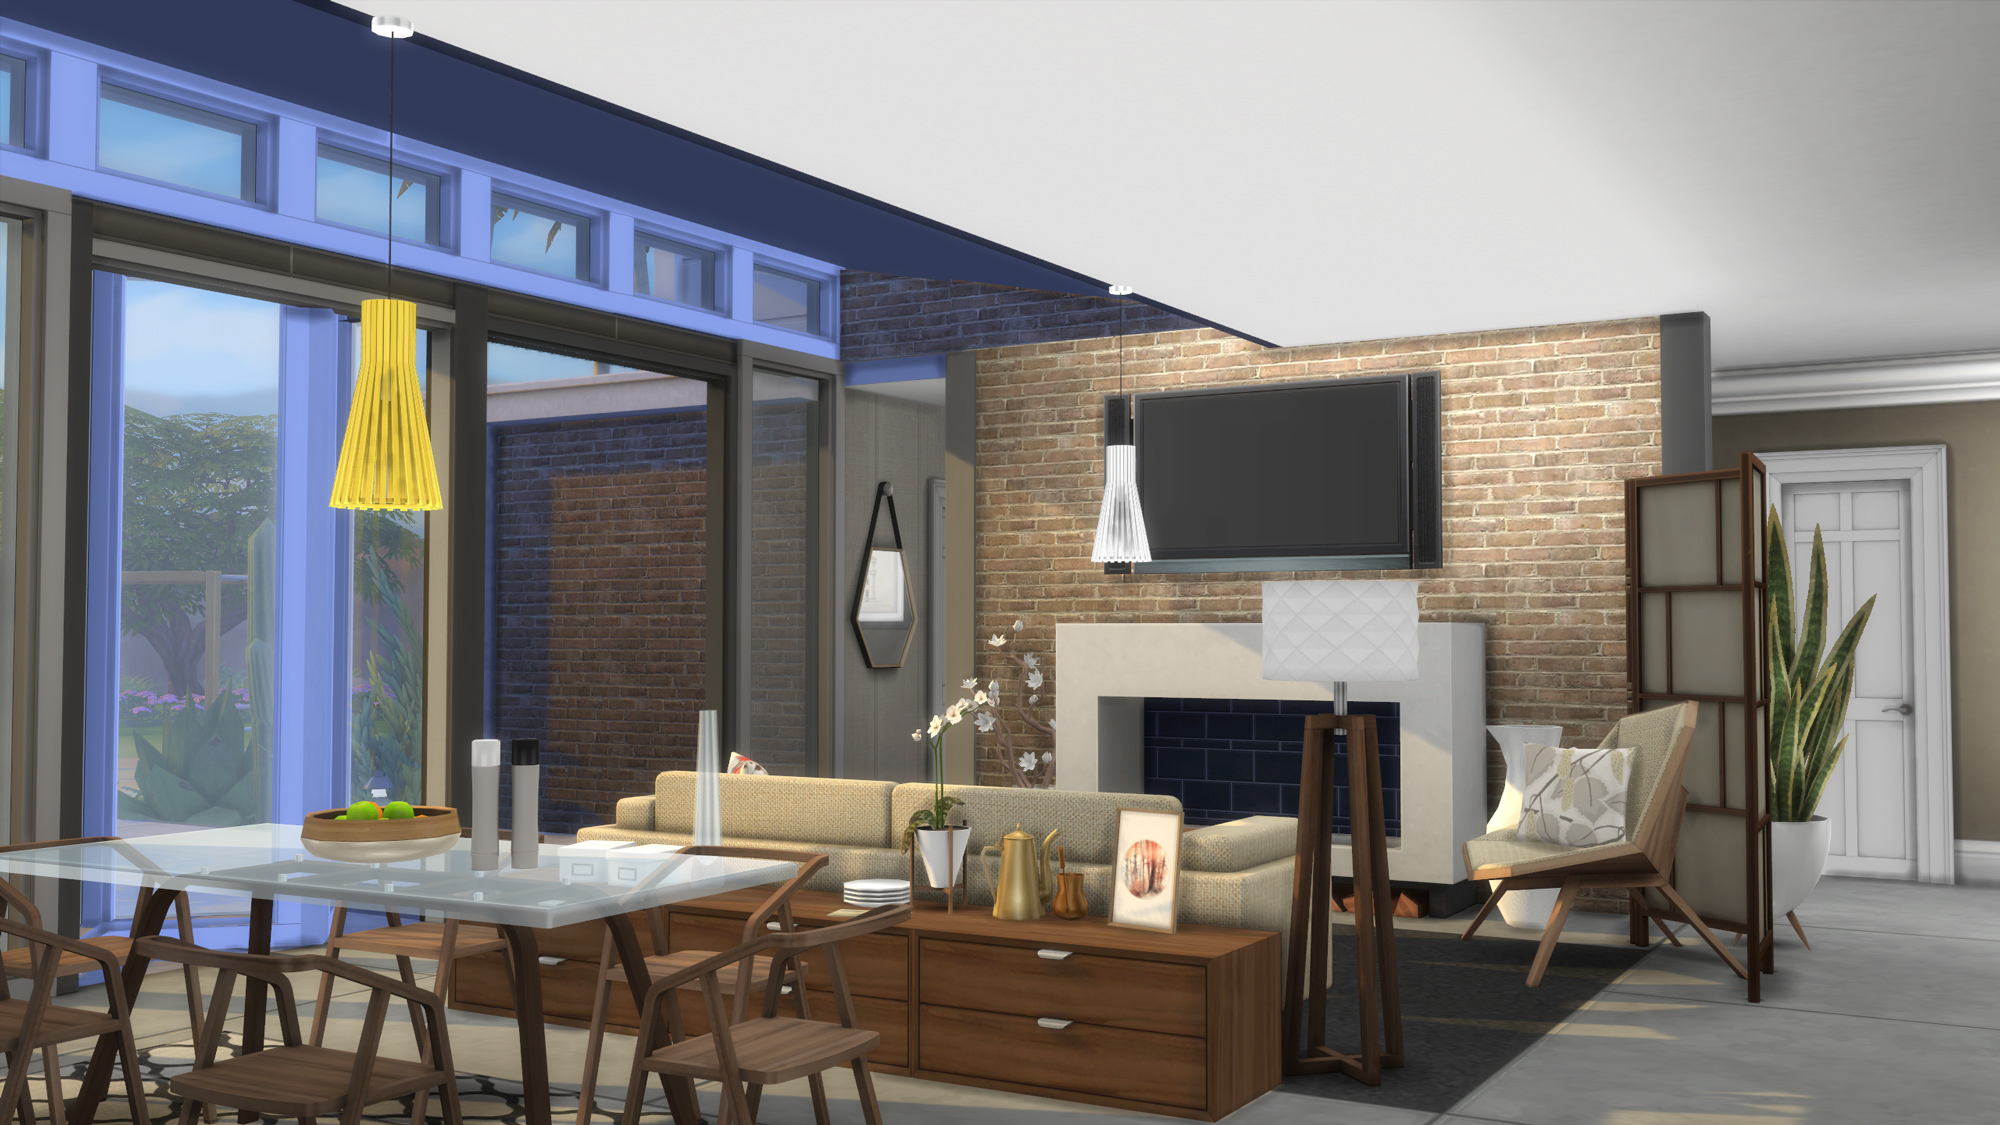 The bi fold sliding doors and semi vaulted ceiling of the living area offer definitive modern flair to the space